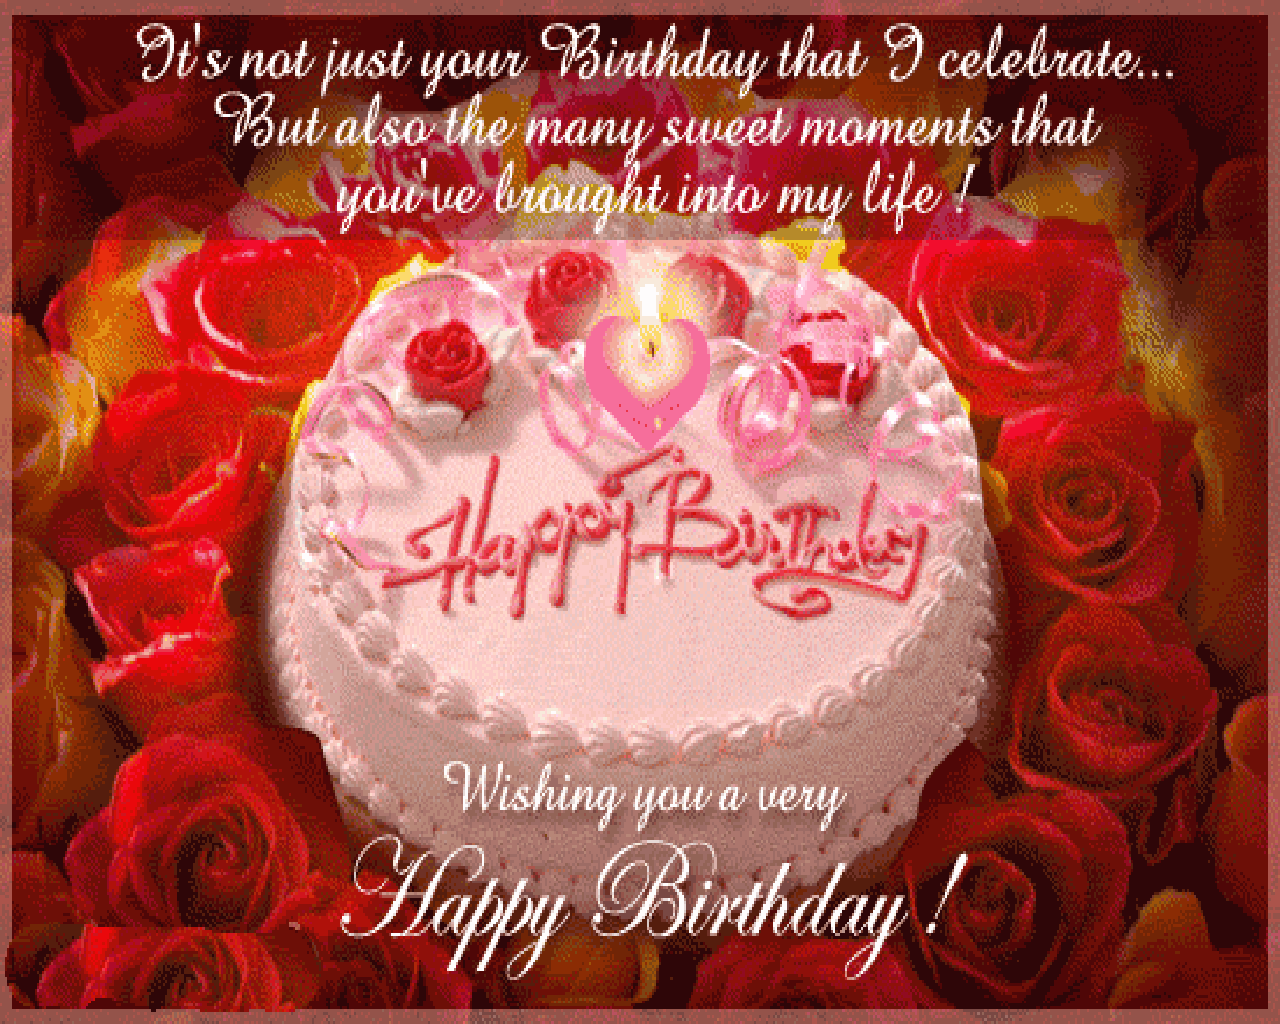 Best Images About Birthday Wish Pinterest Happy Cards Messages